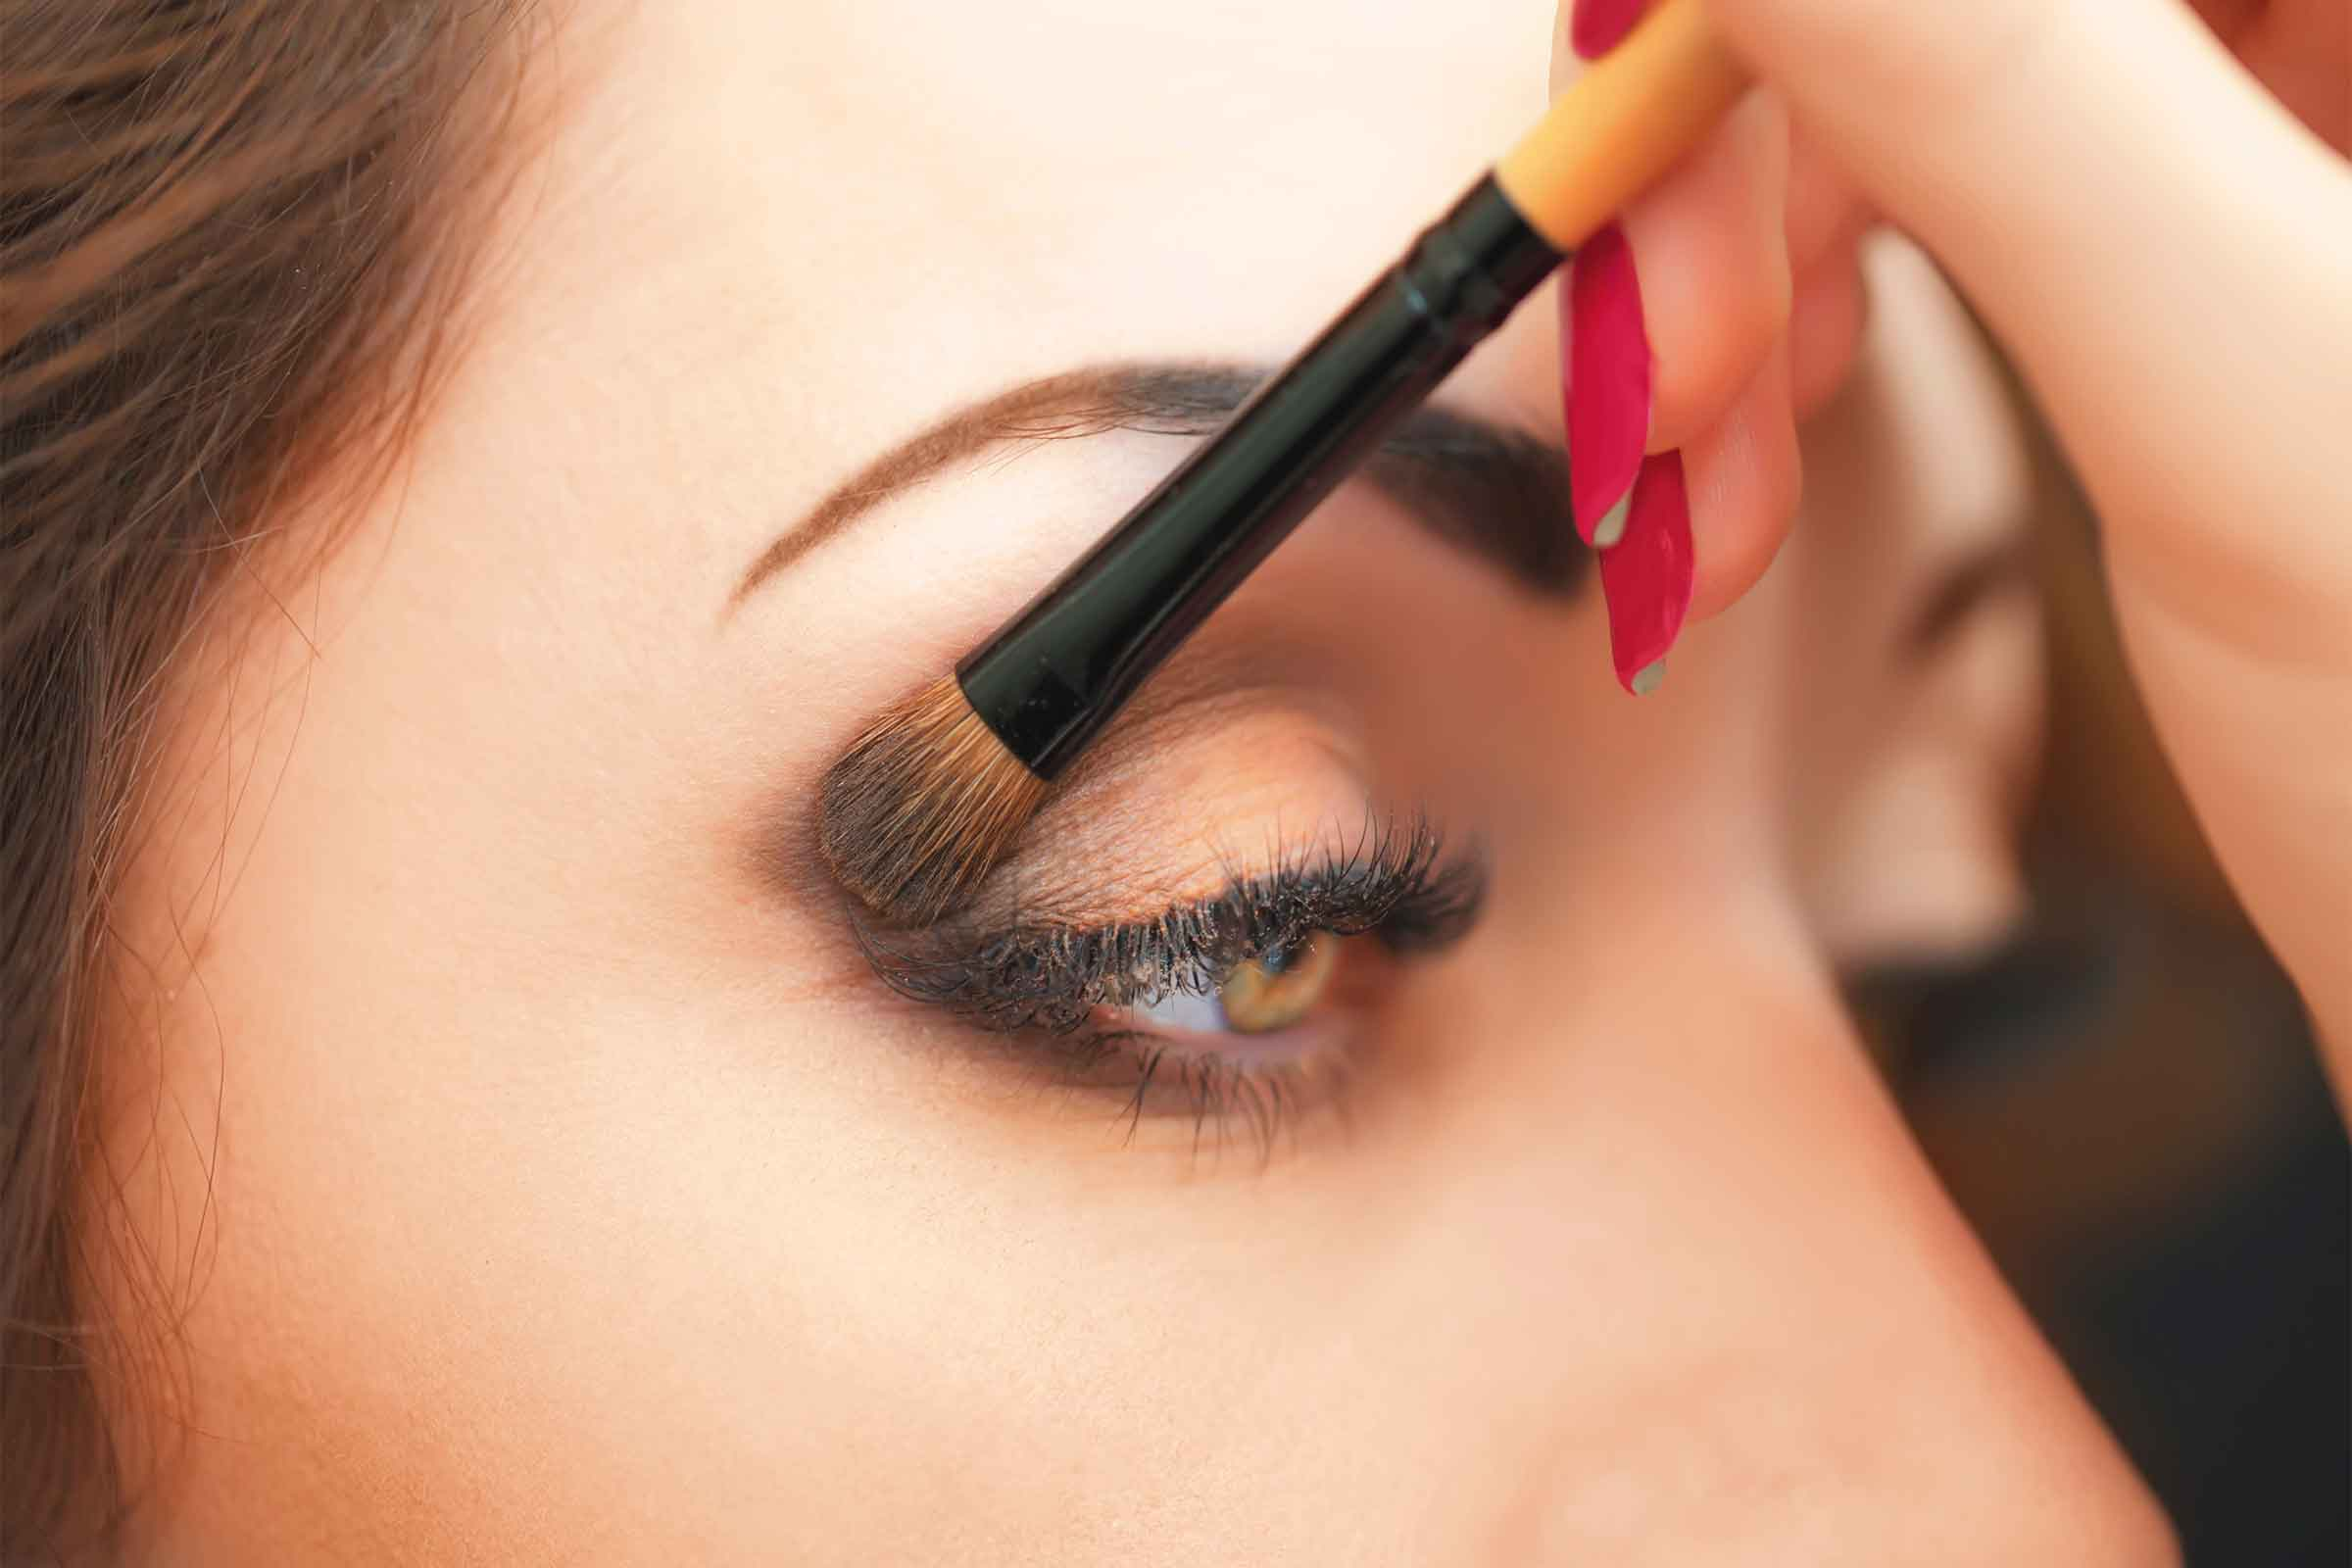 makeup tips 12 Archives - MyLargeBox